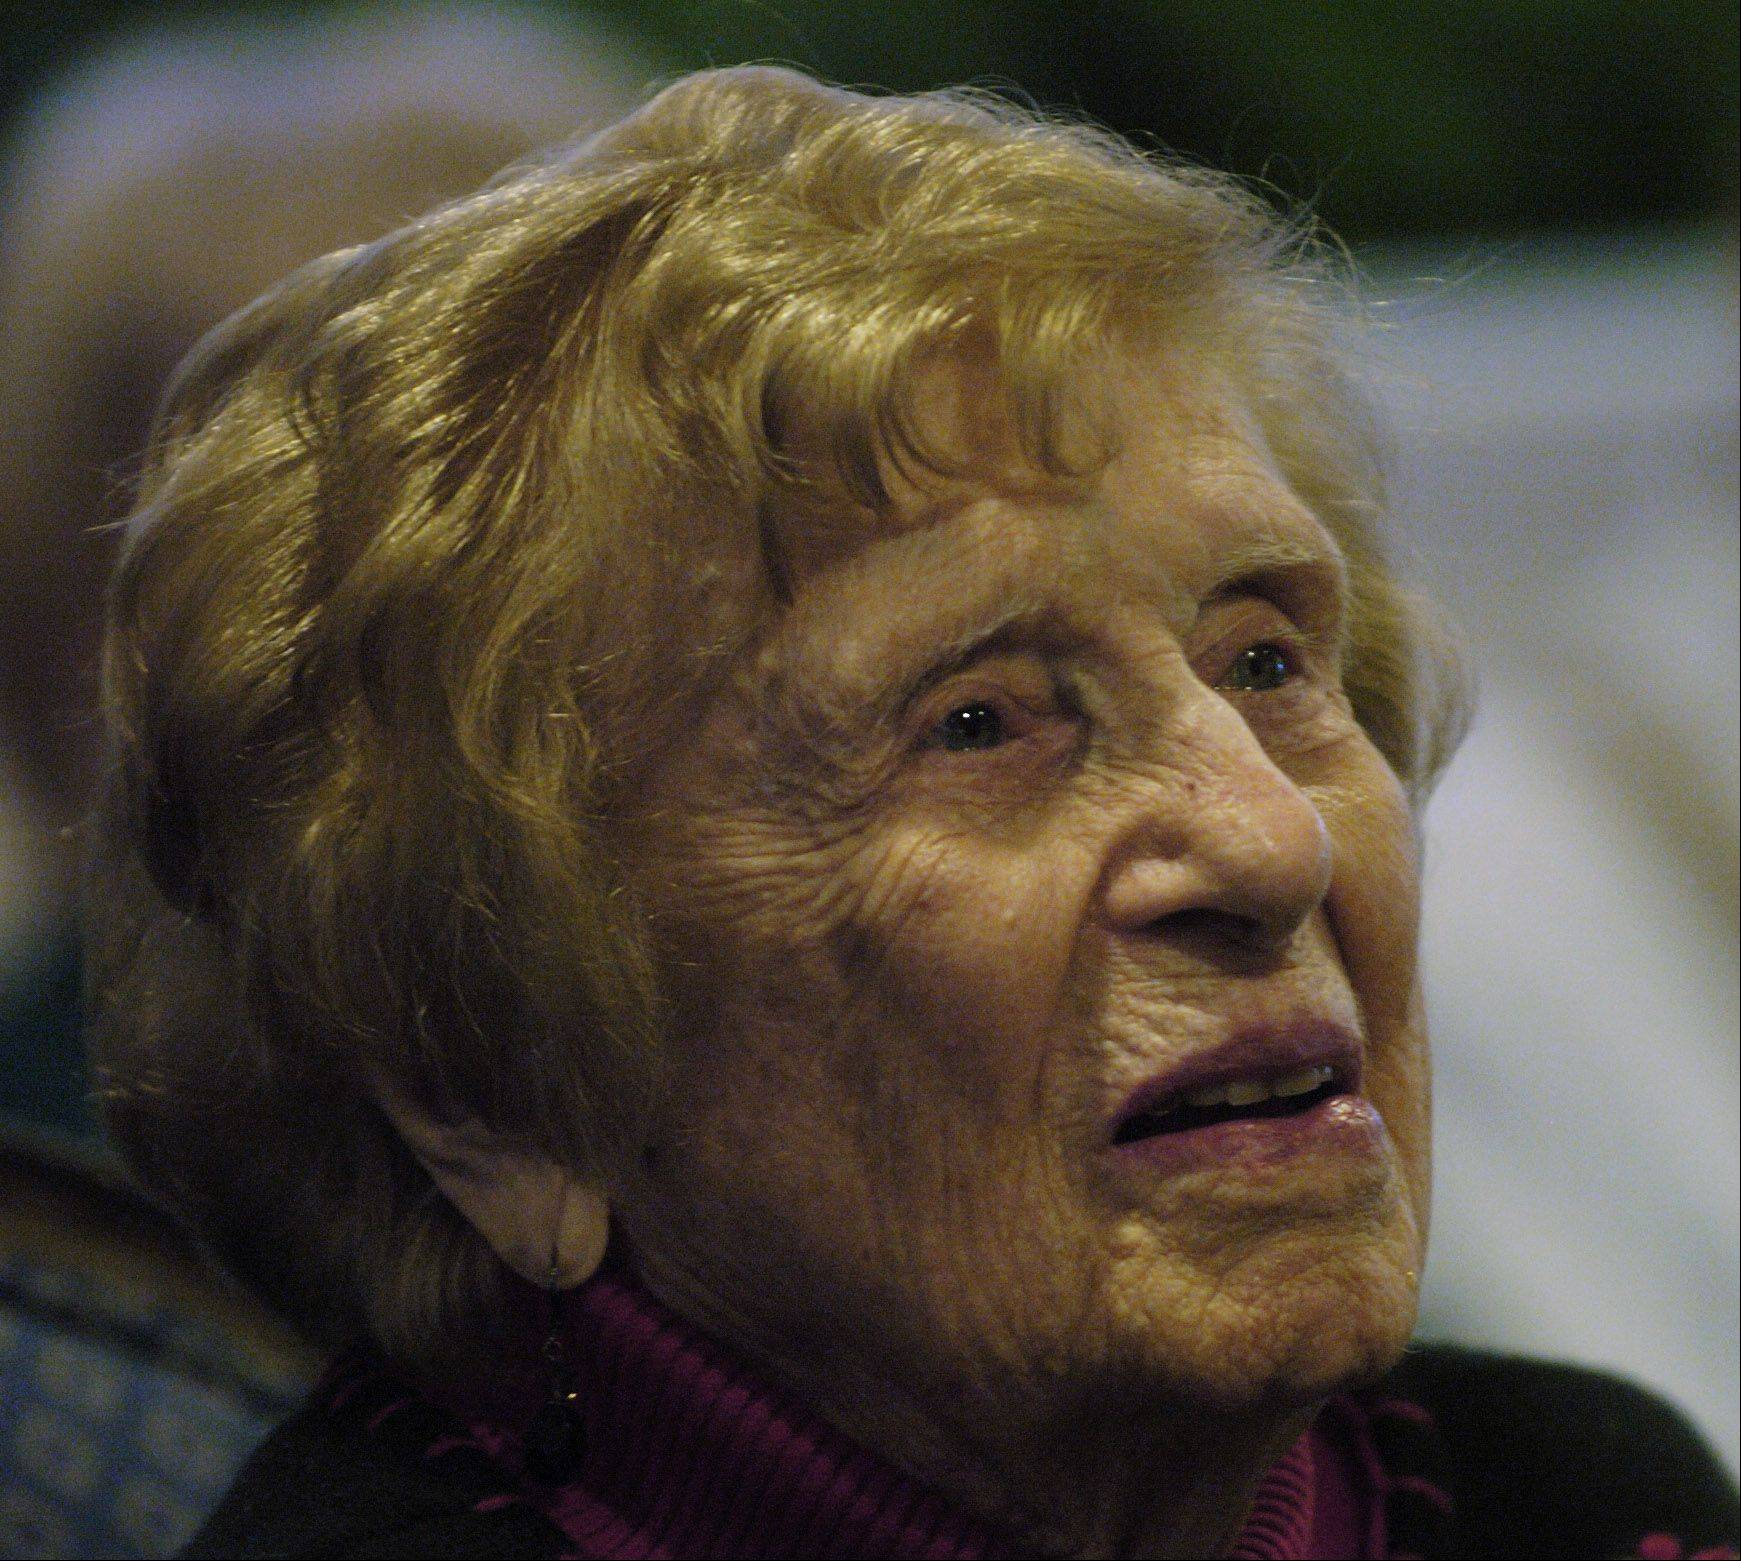 JOE LEWNARD/jlewnard@dailyherald.com Lois Arbanas of Arlington Heights celebrated her 105th birthday this weekend. A resident of The Moorings of Arlington Heights, Arbanas says the key to her longevity has been doing things in moderation.